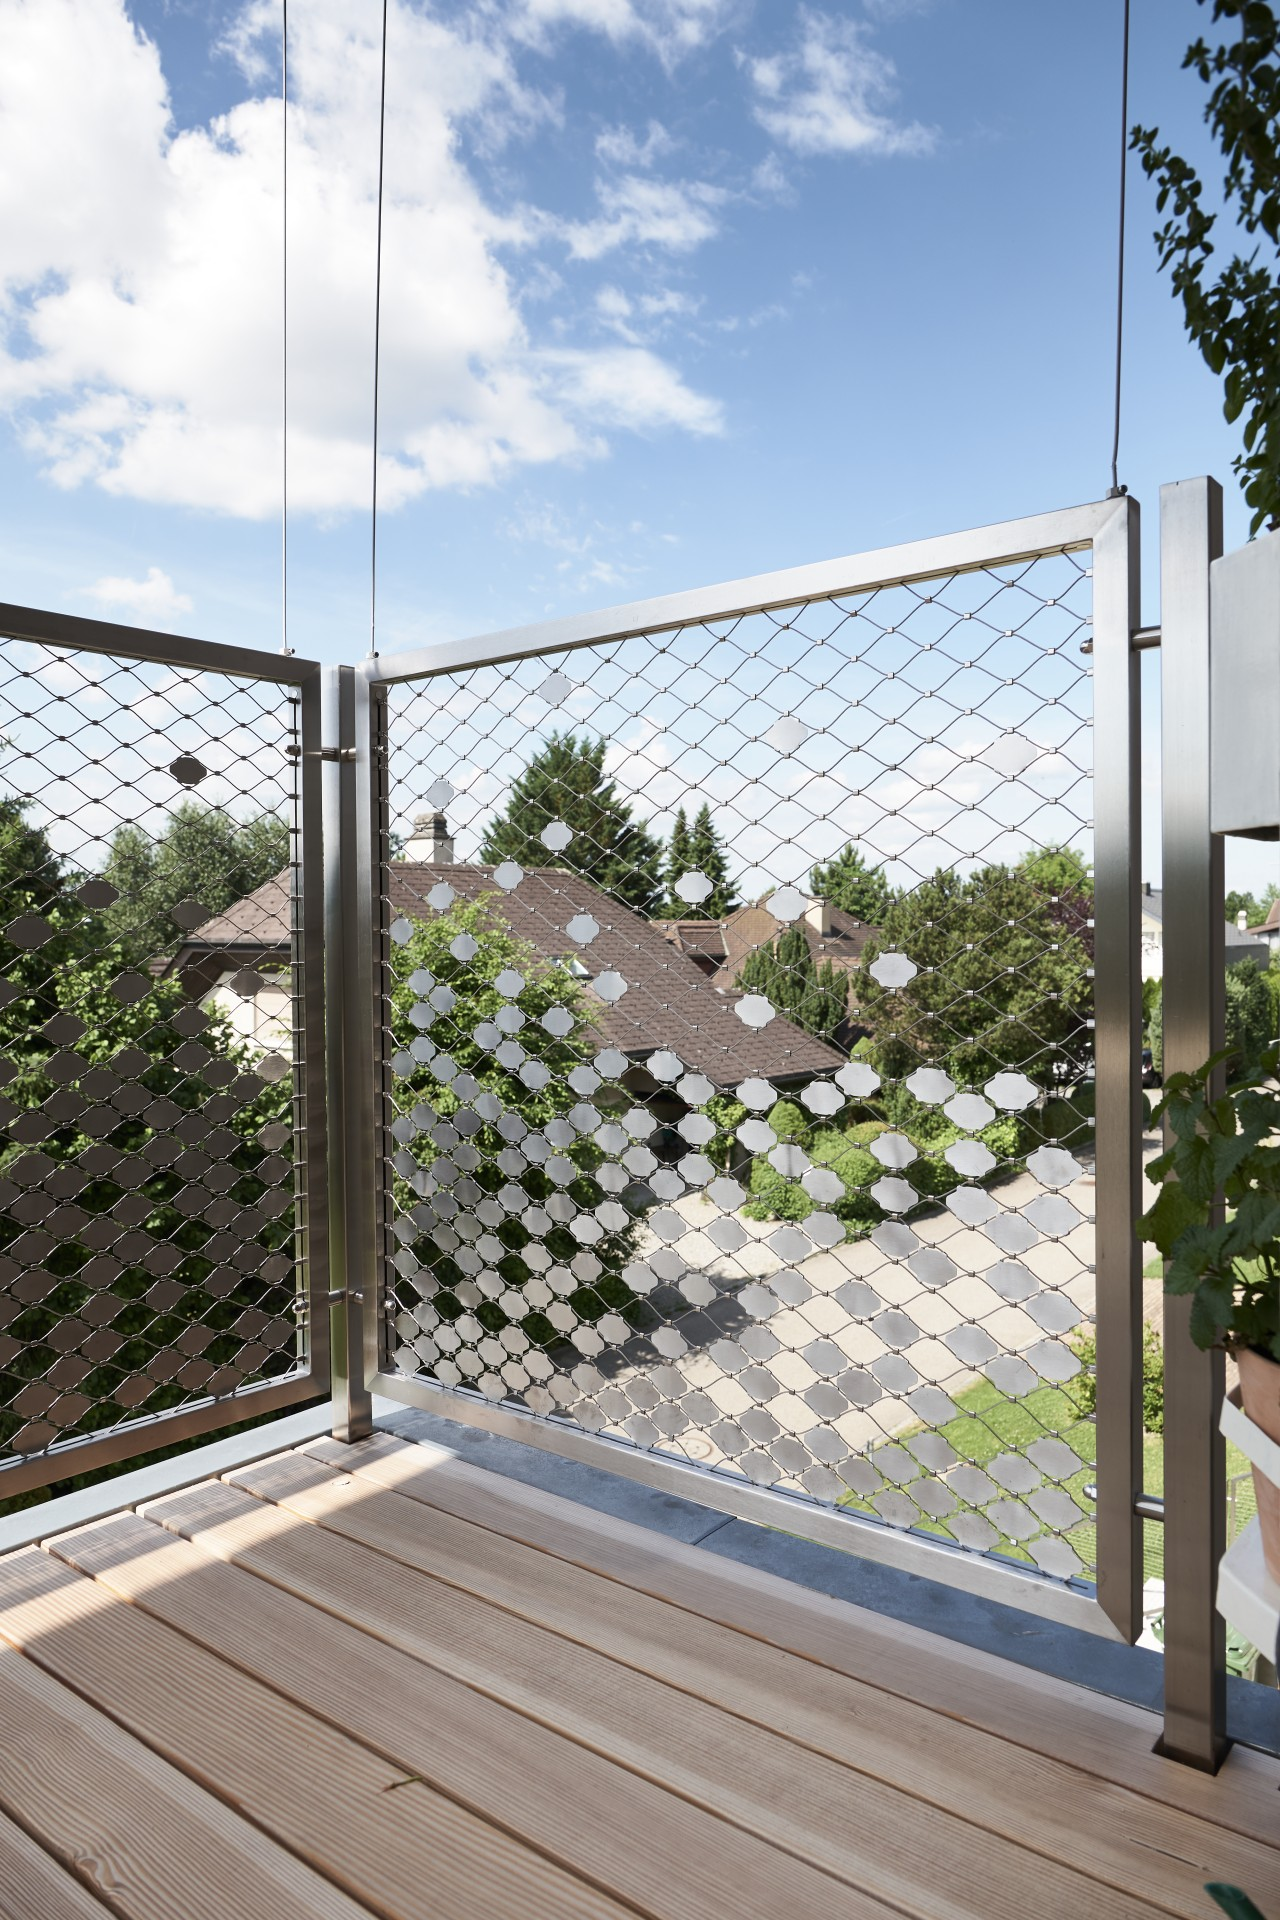 modern stainless steel railing with wire mesh